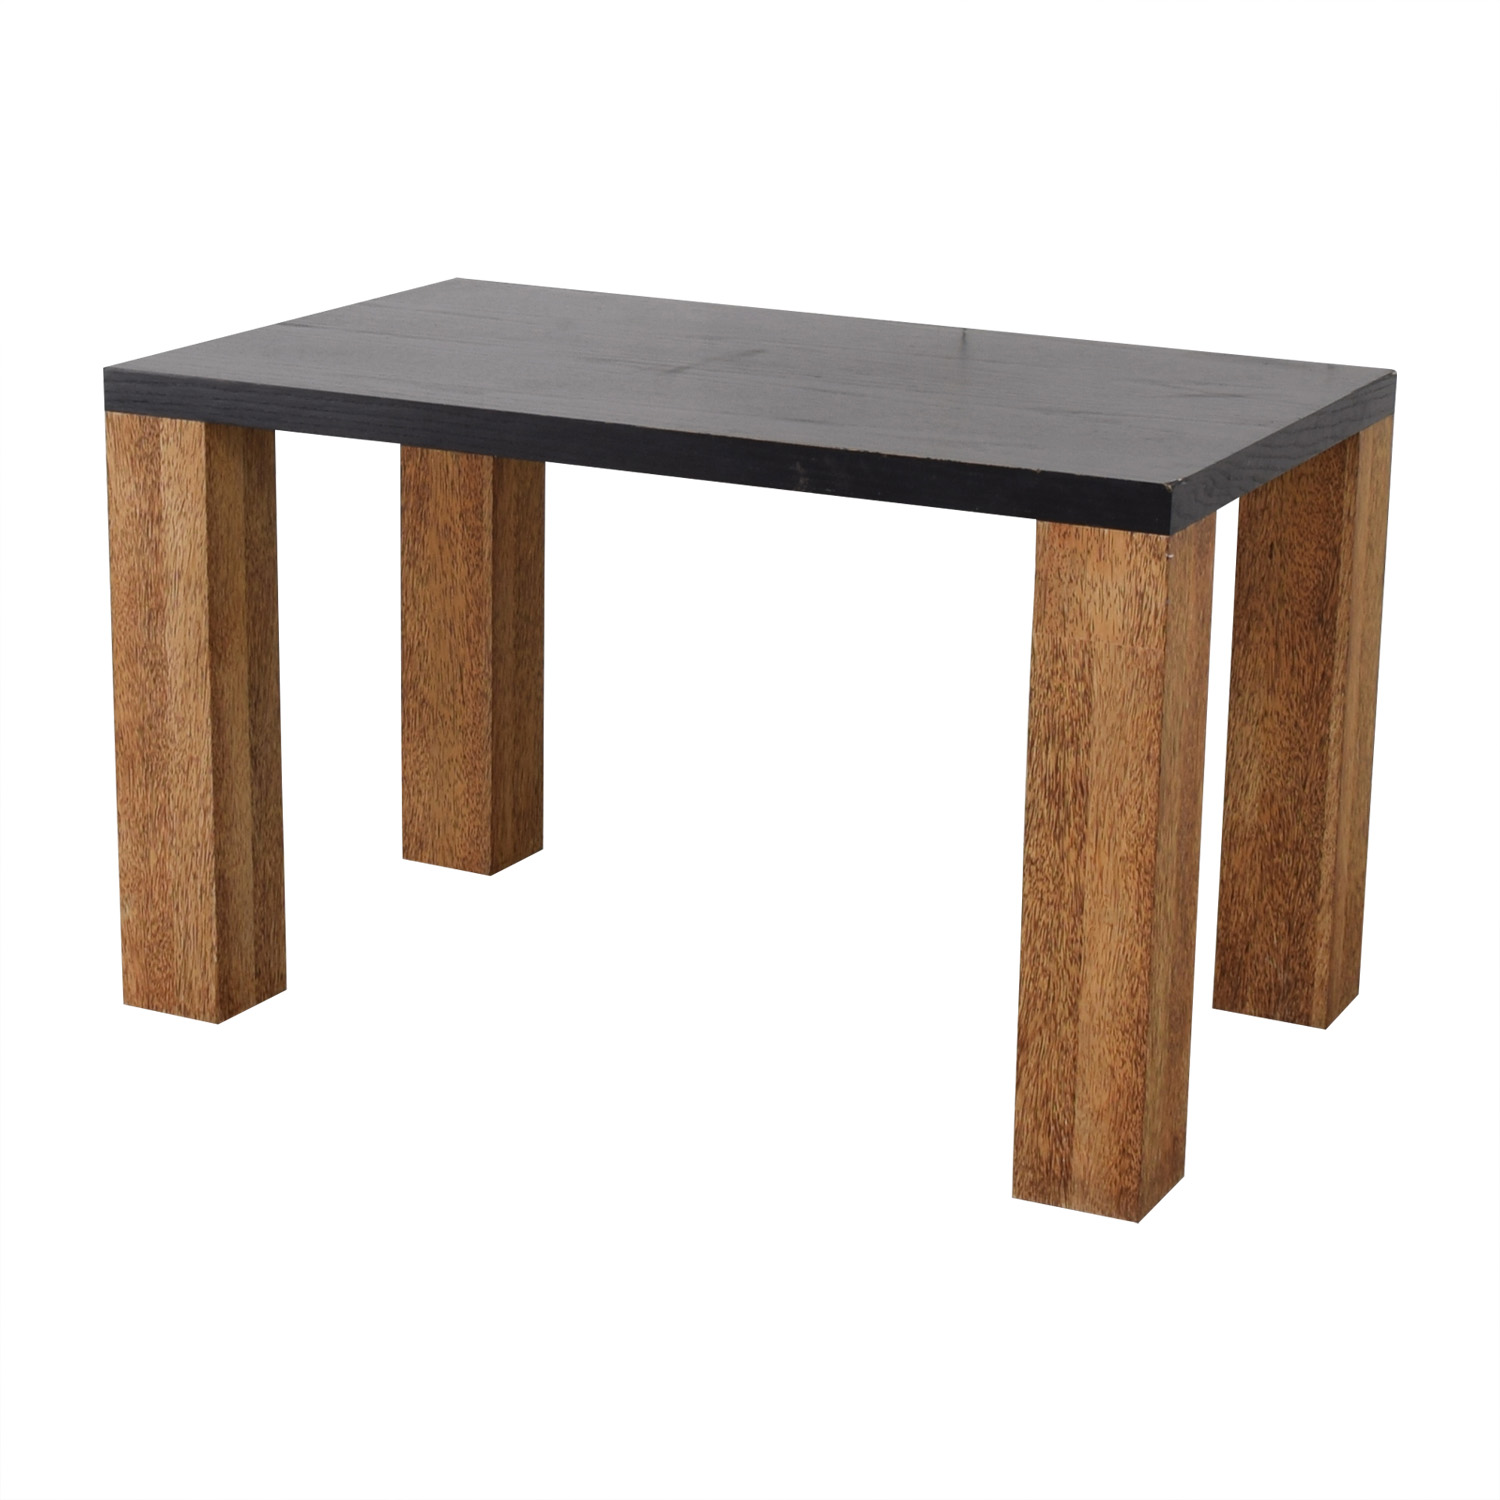 Custom Brazilian Palm Wood and Black Top Dining Table dimensions